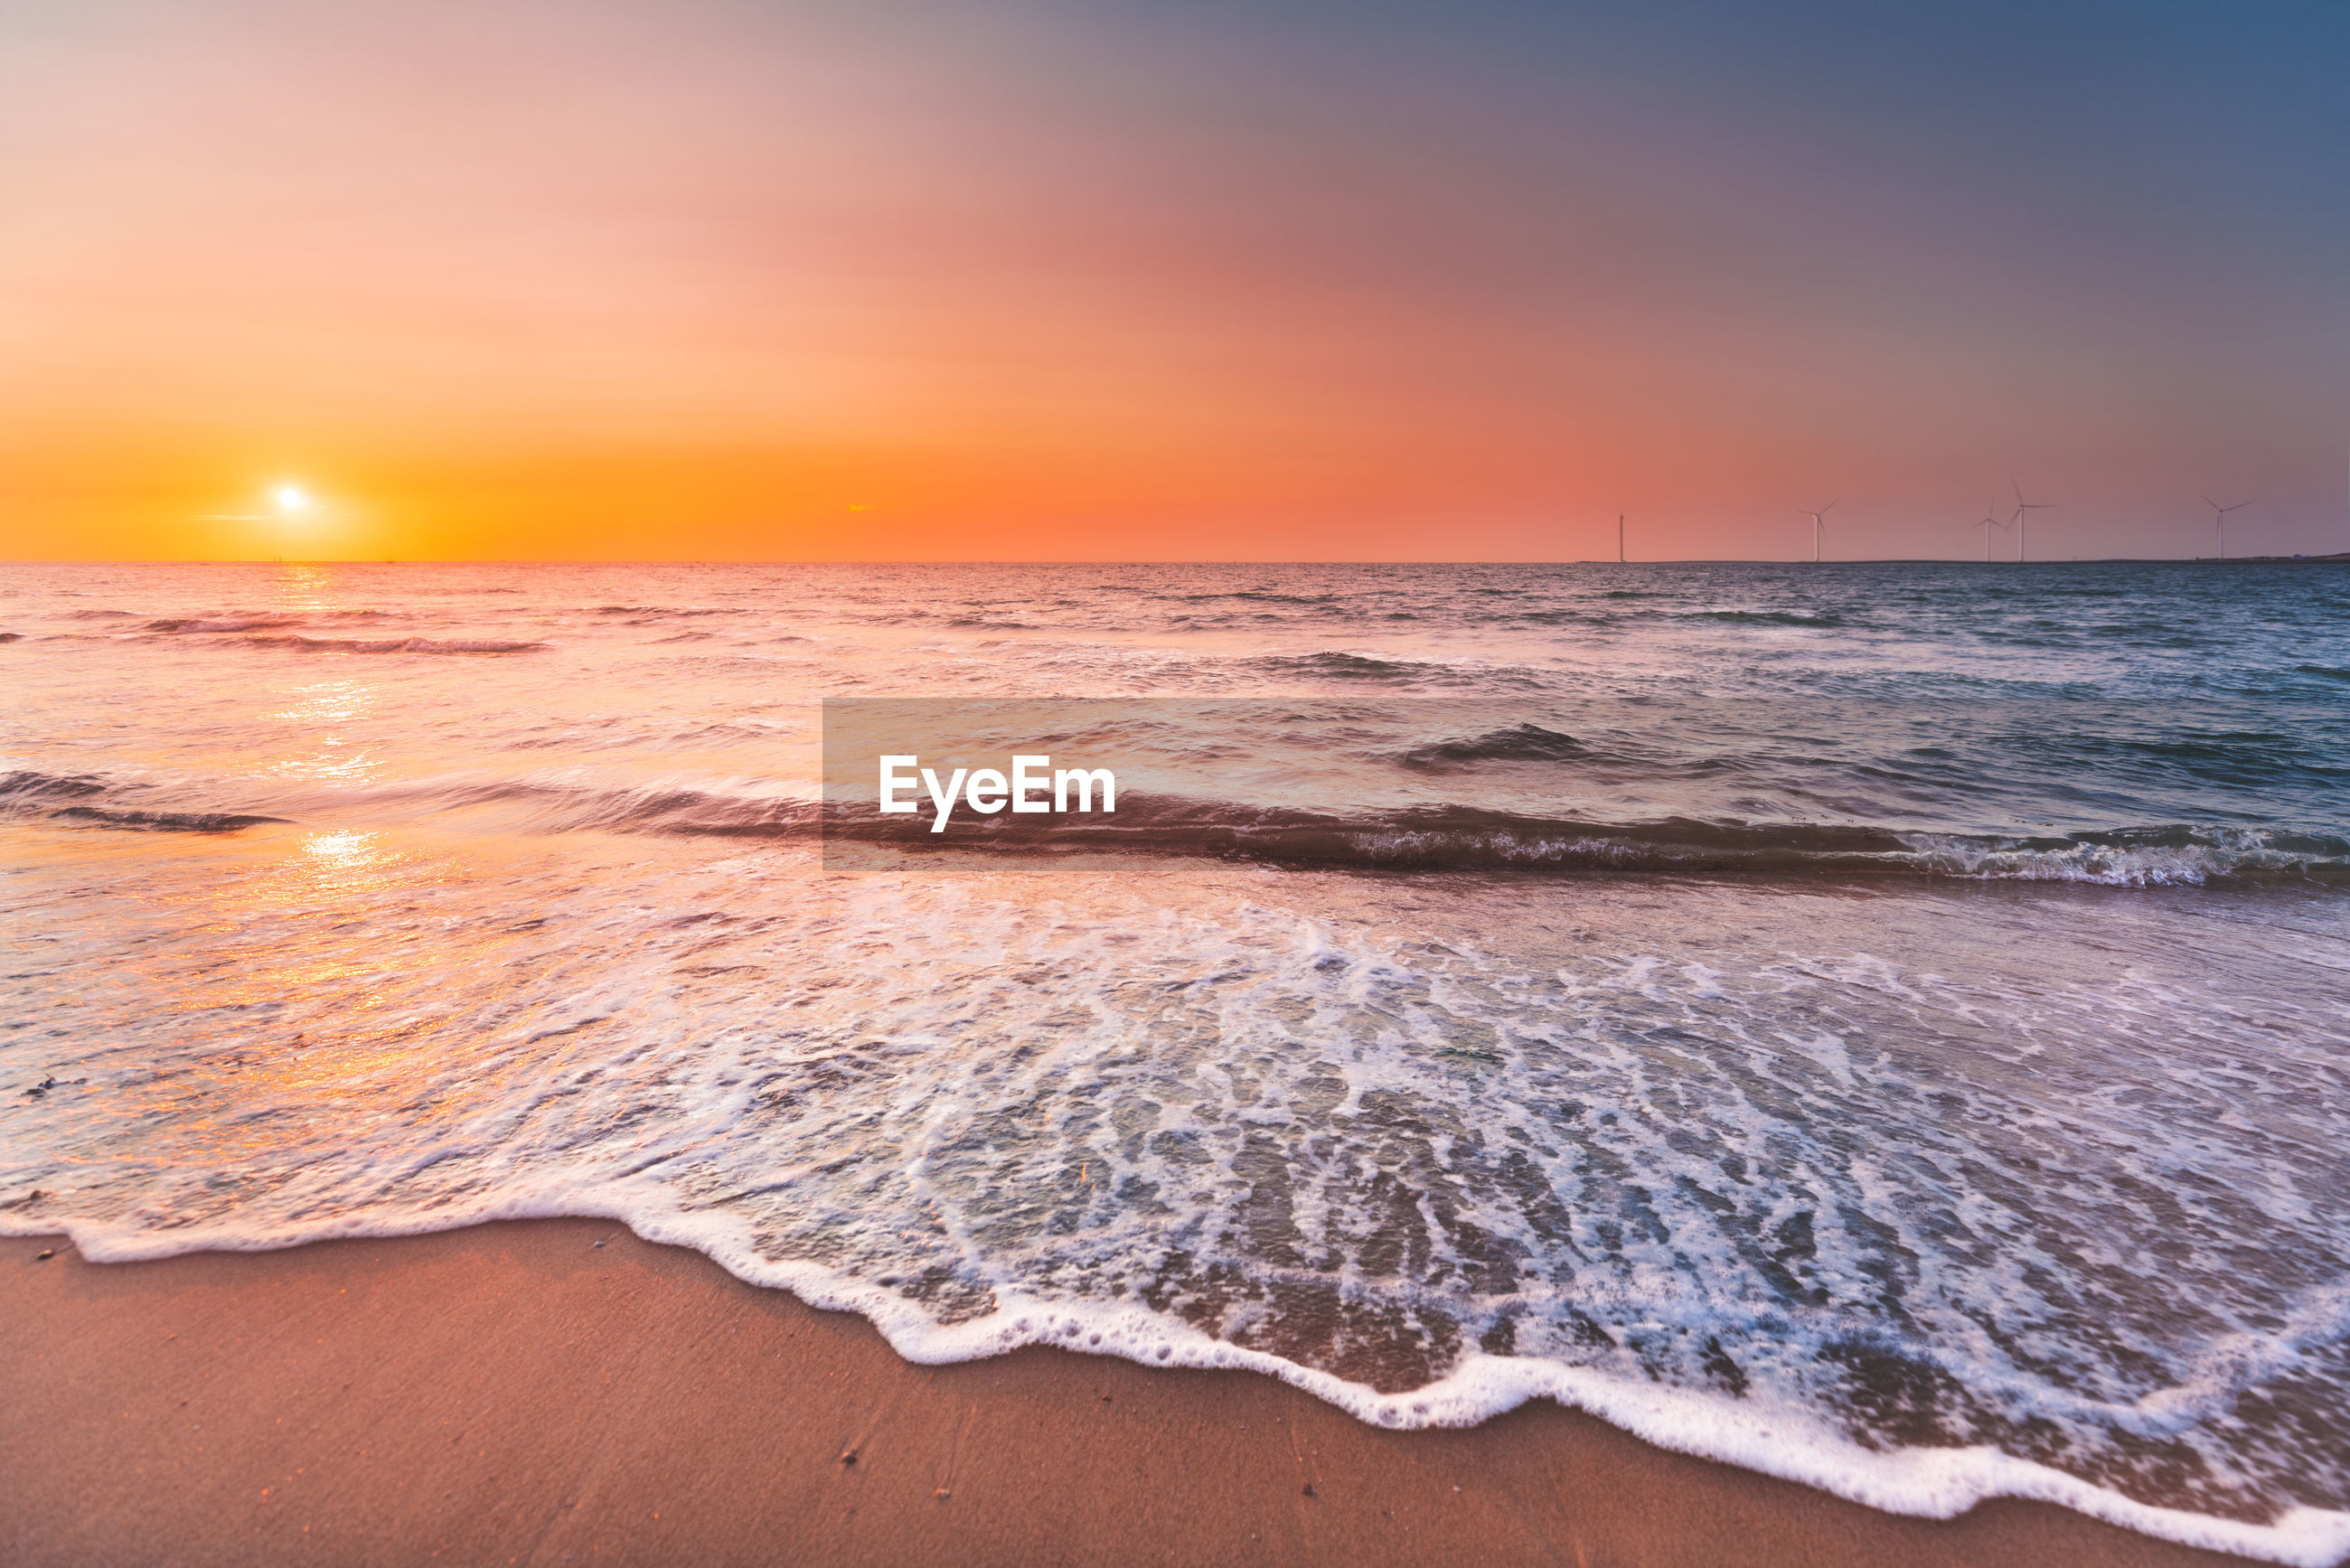 SCENIC VIEW OF BEACH AT SUNSET